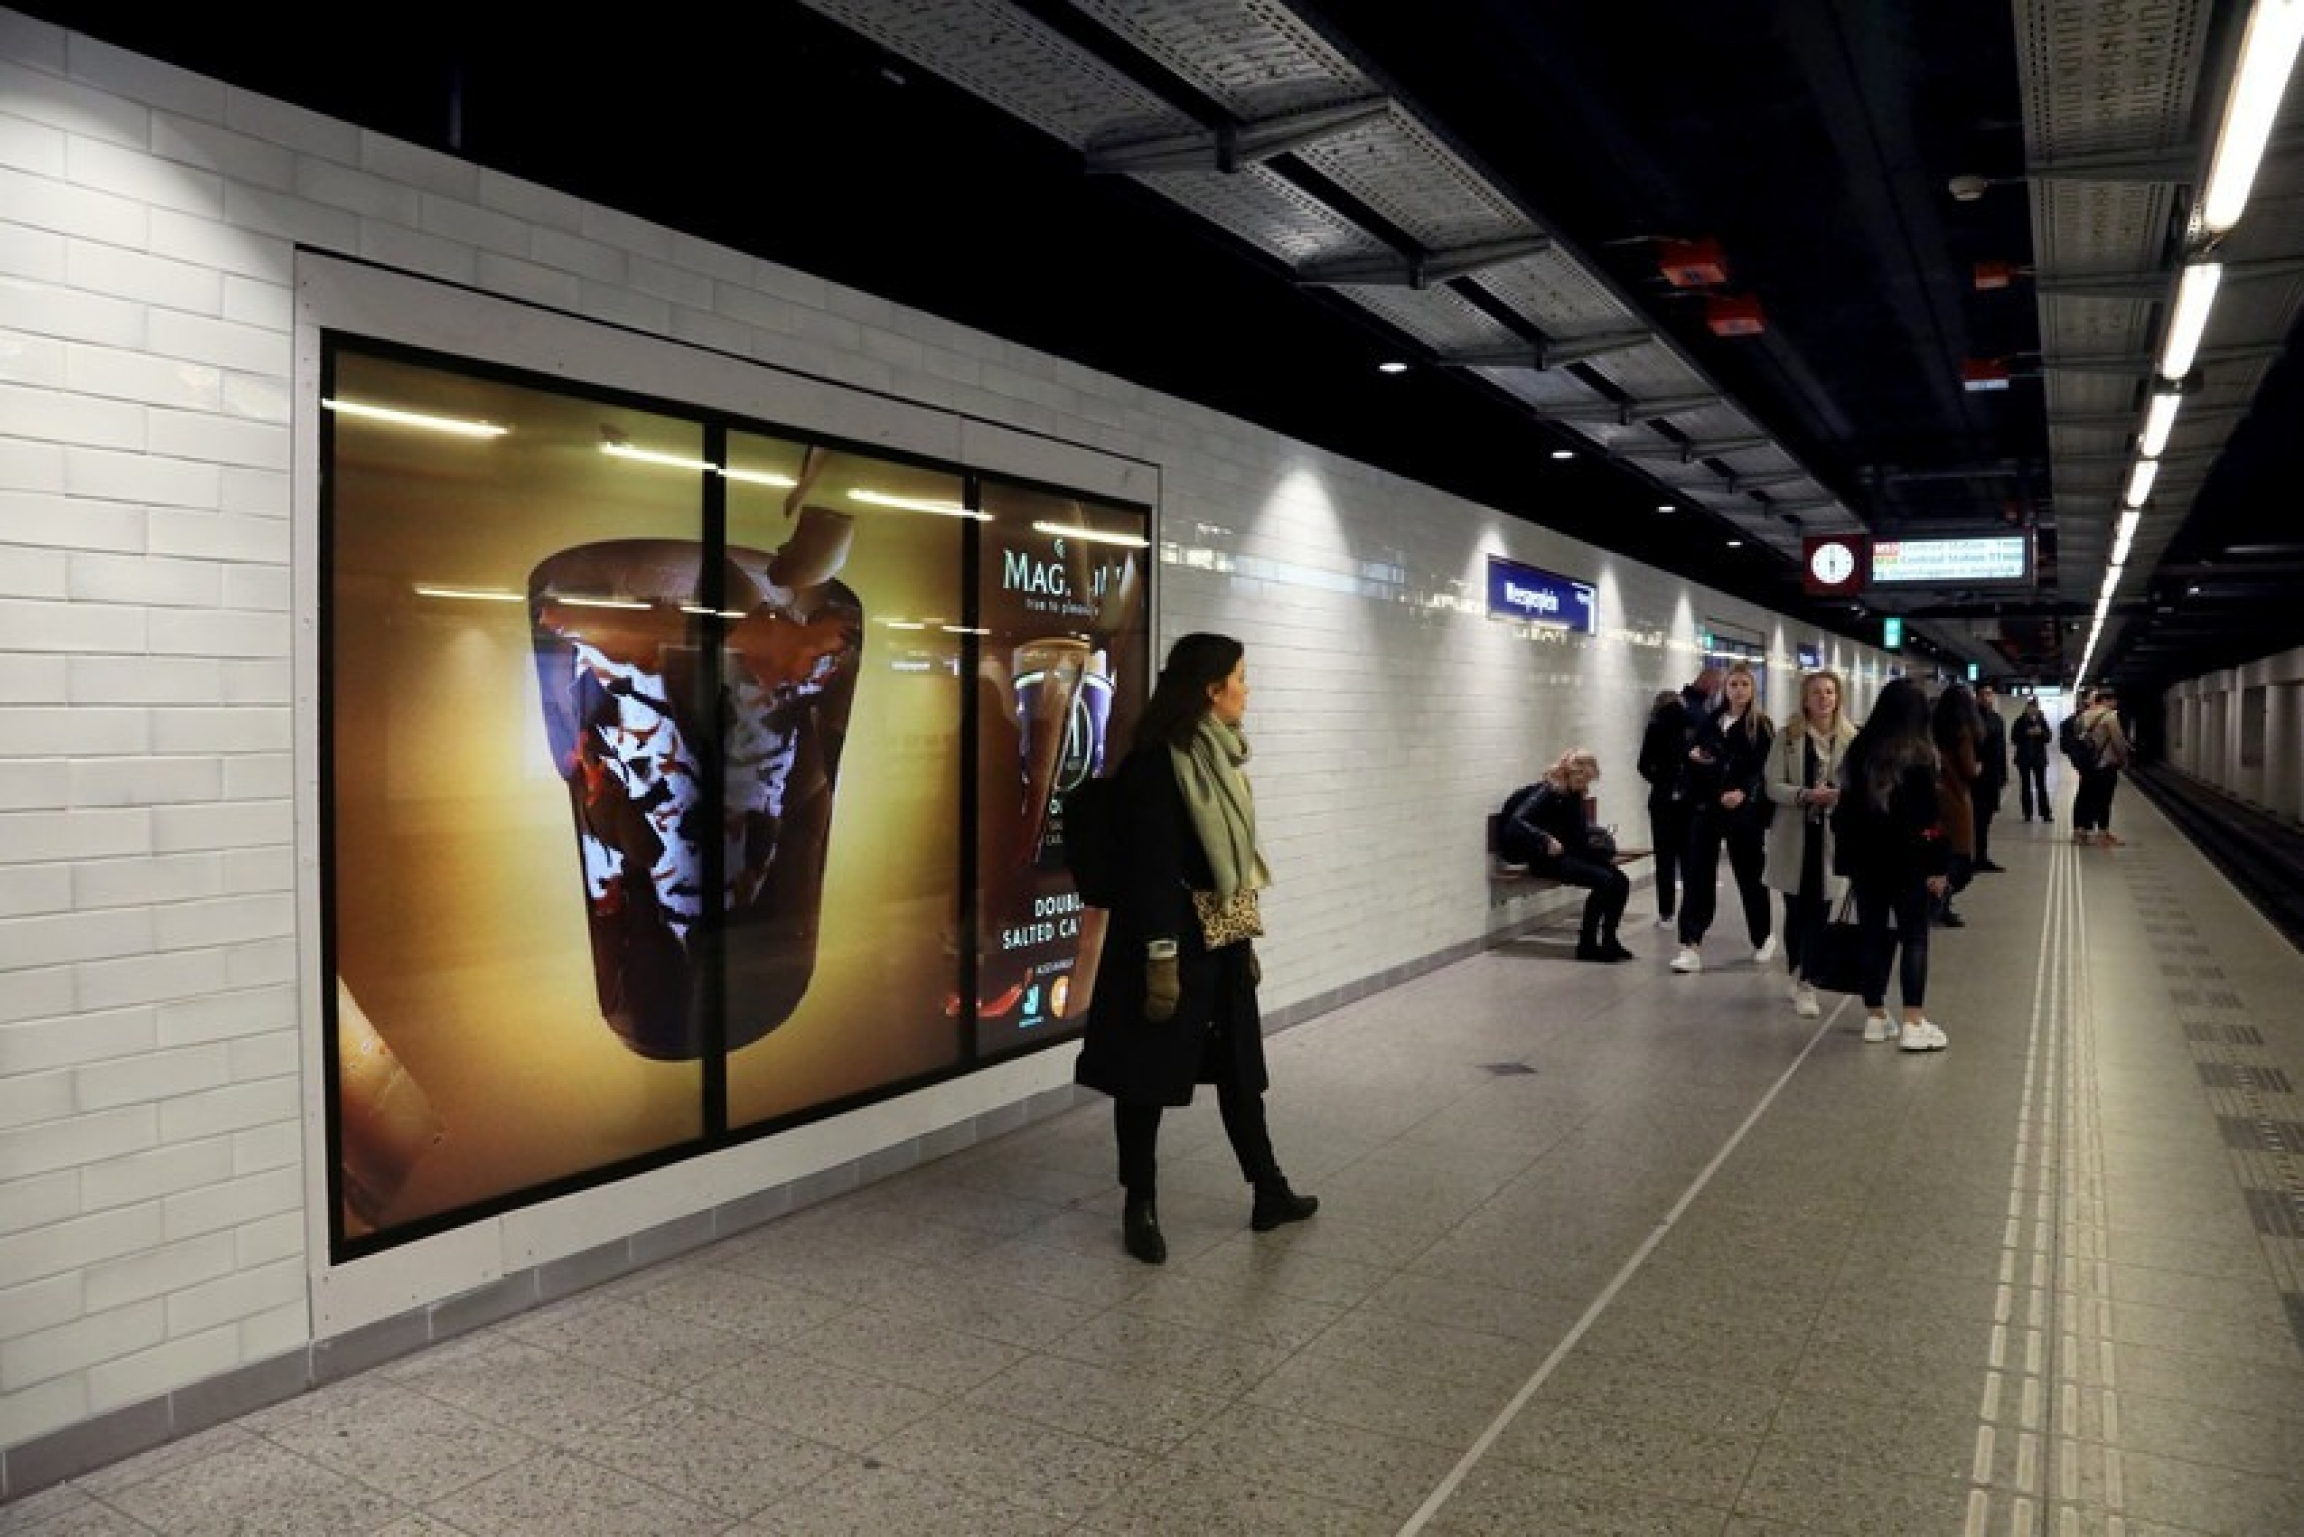 An ad for an ice cream pint glows in an Amsterdam metro.